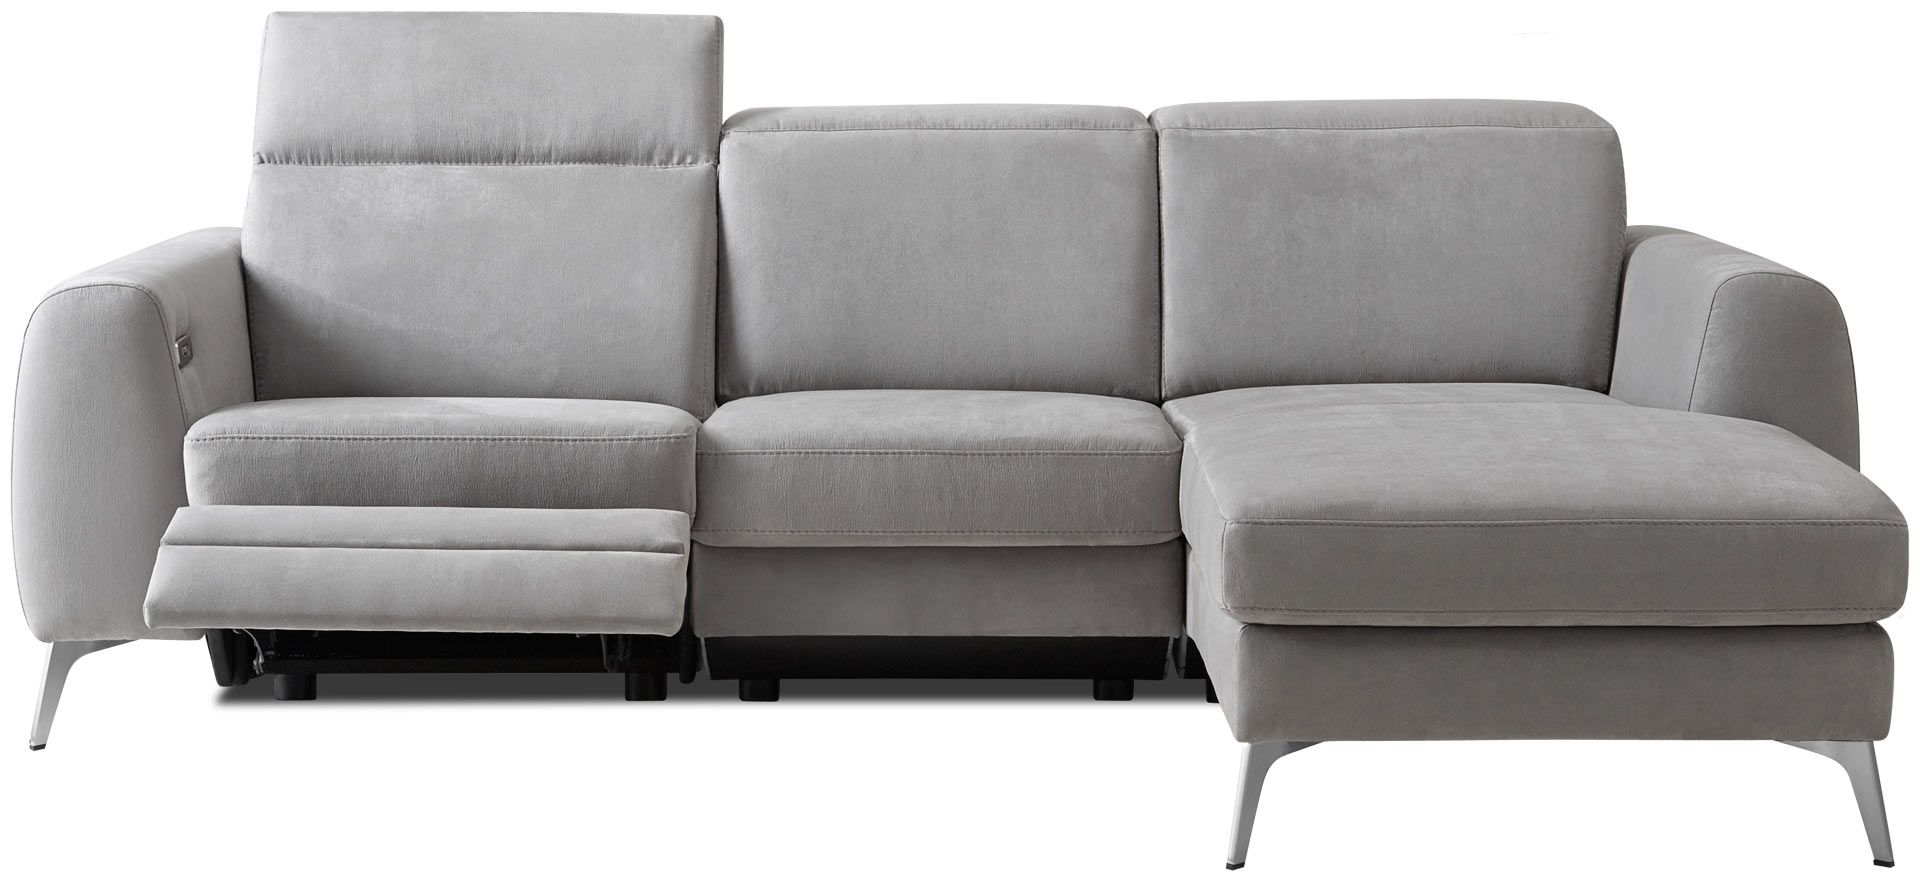 Love Love This Couch Modern Without Being Too Modern